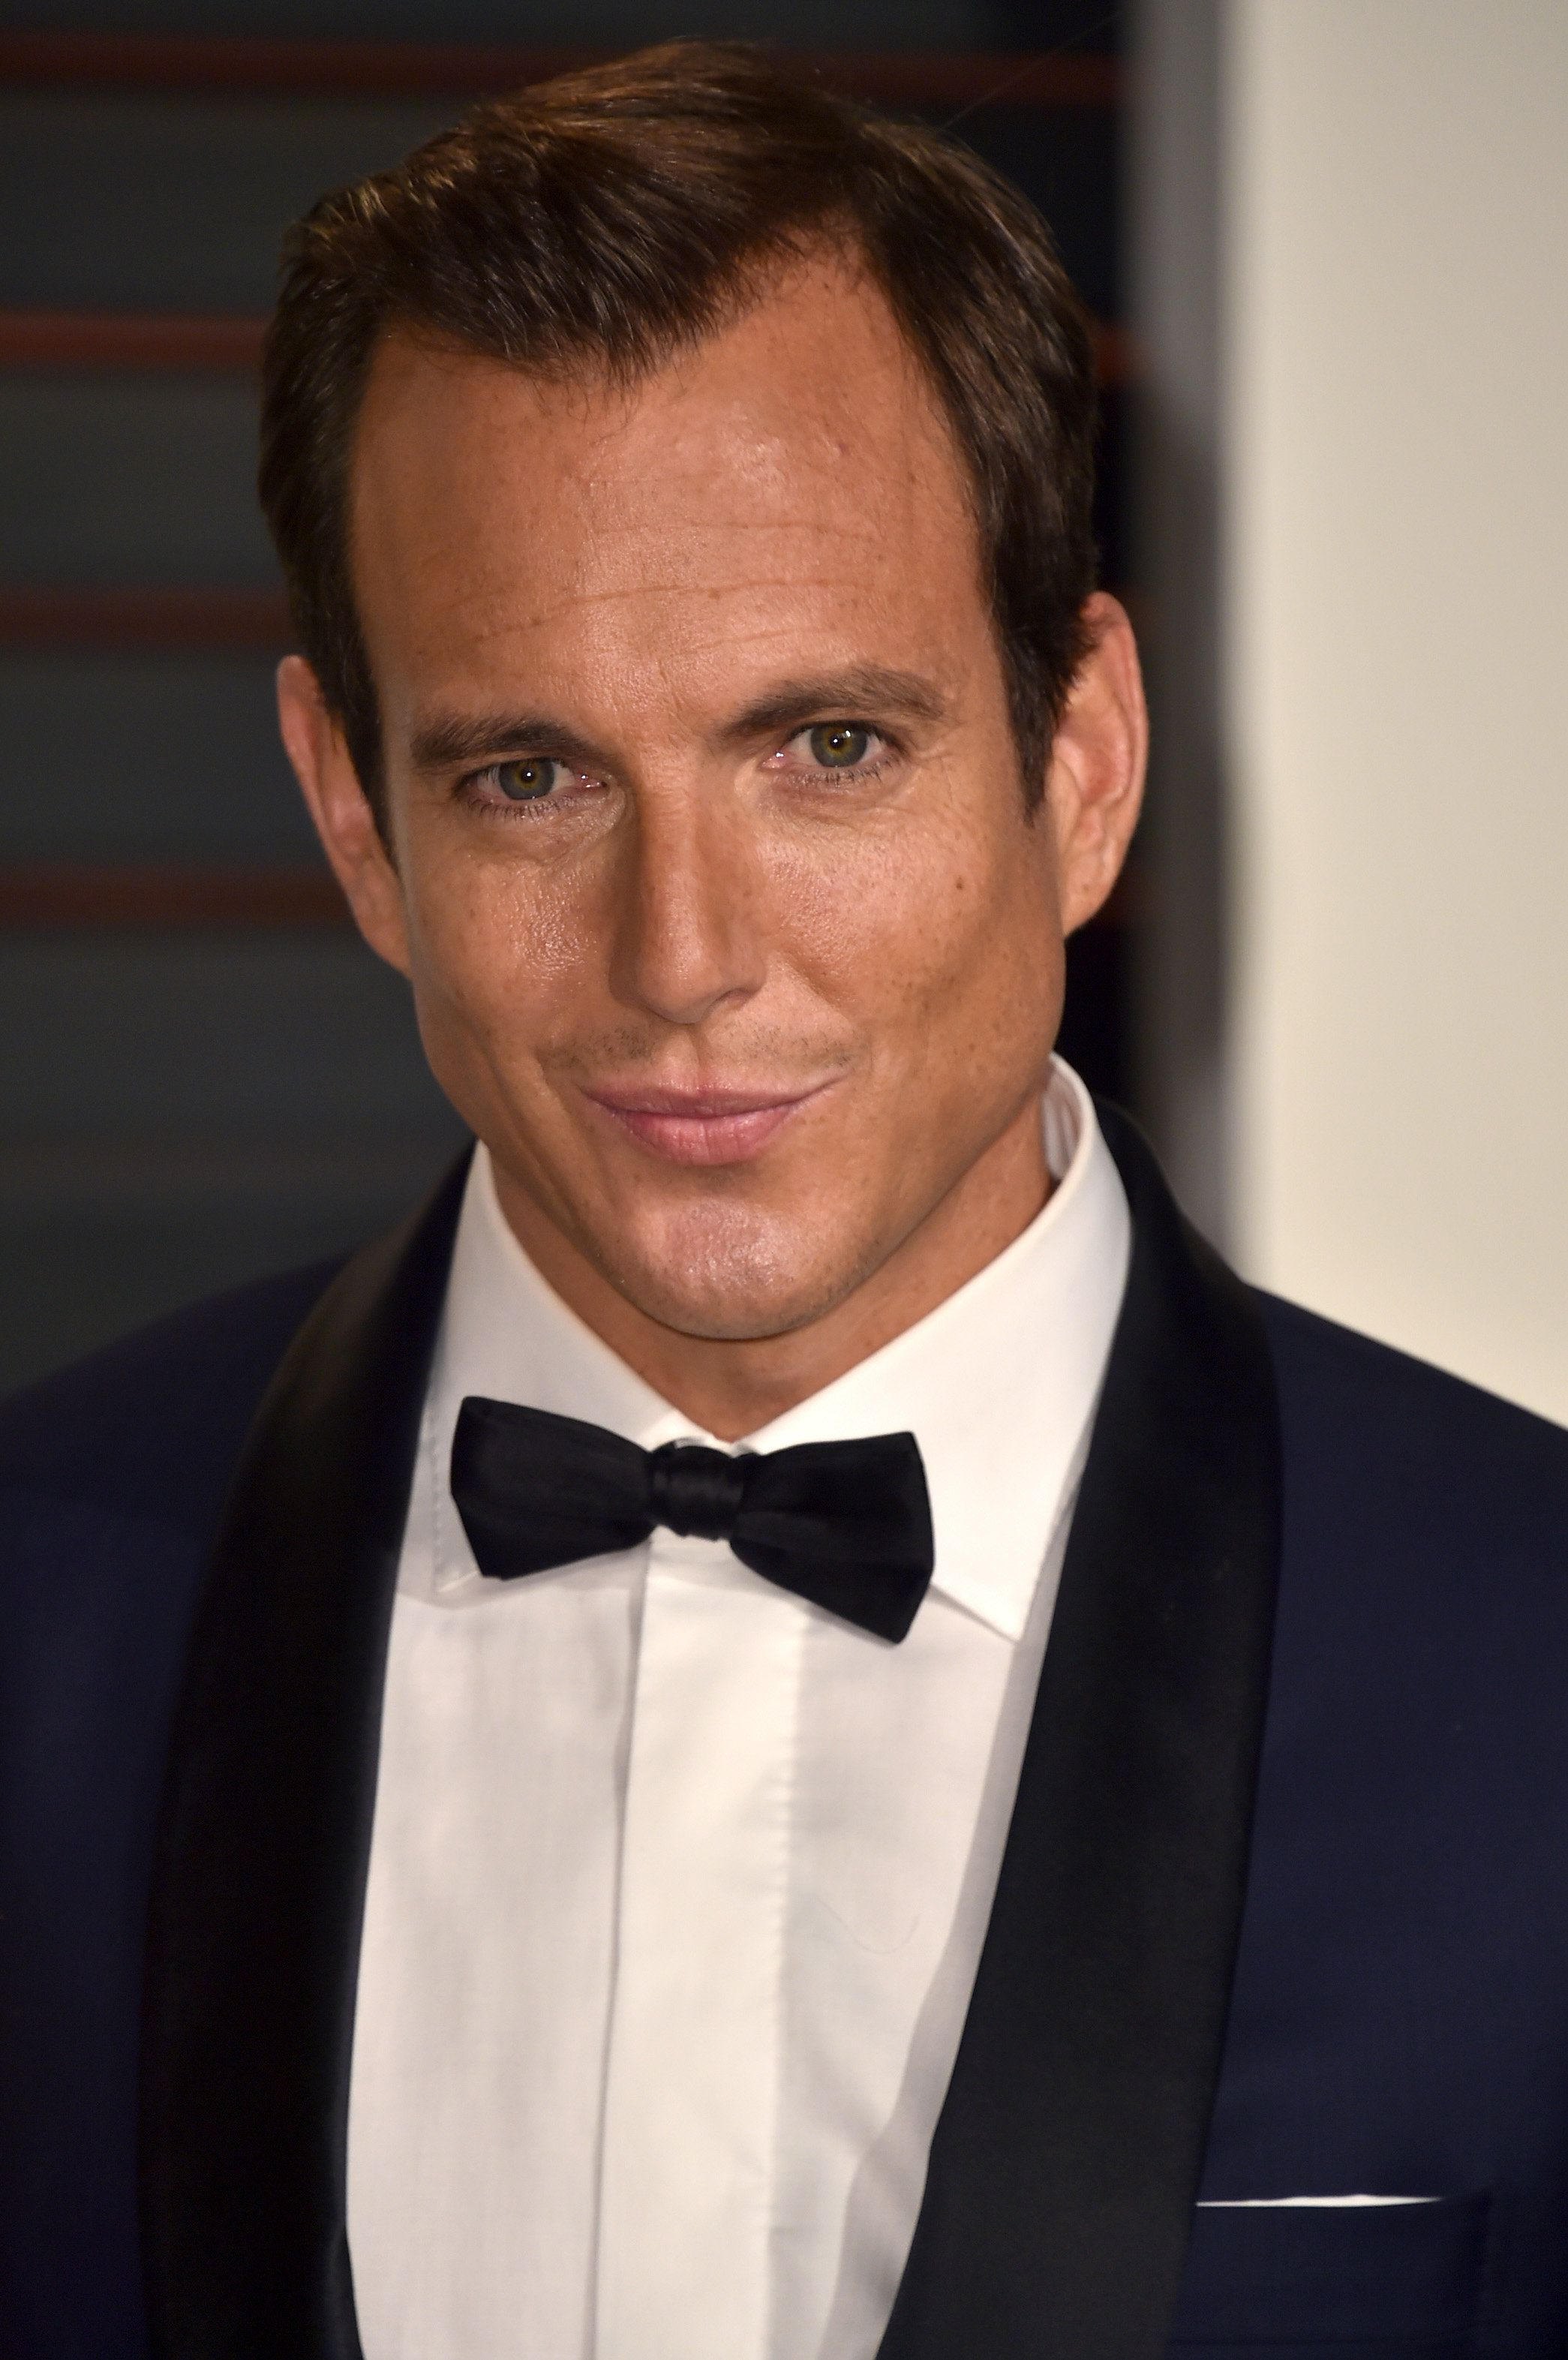 BEVERLY HILLS, CA - FEBRUARY 22:  Actor Will Arnett attends the 2015 Vanity Fair Oscar Party hosted by Graydon Carter at Wallis Annenberg Center for the Performing Arts on February 22, 2015 in Beverly Hills, California.  (Photo by Alberto E. Rodriguez/WireImage)